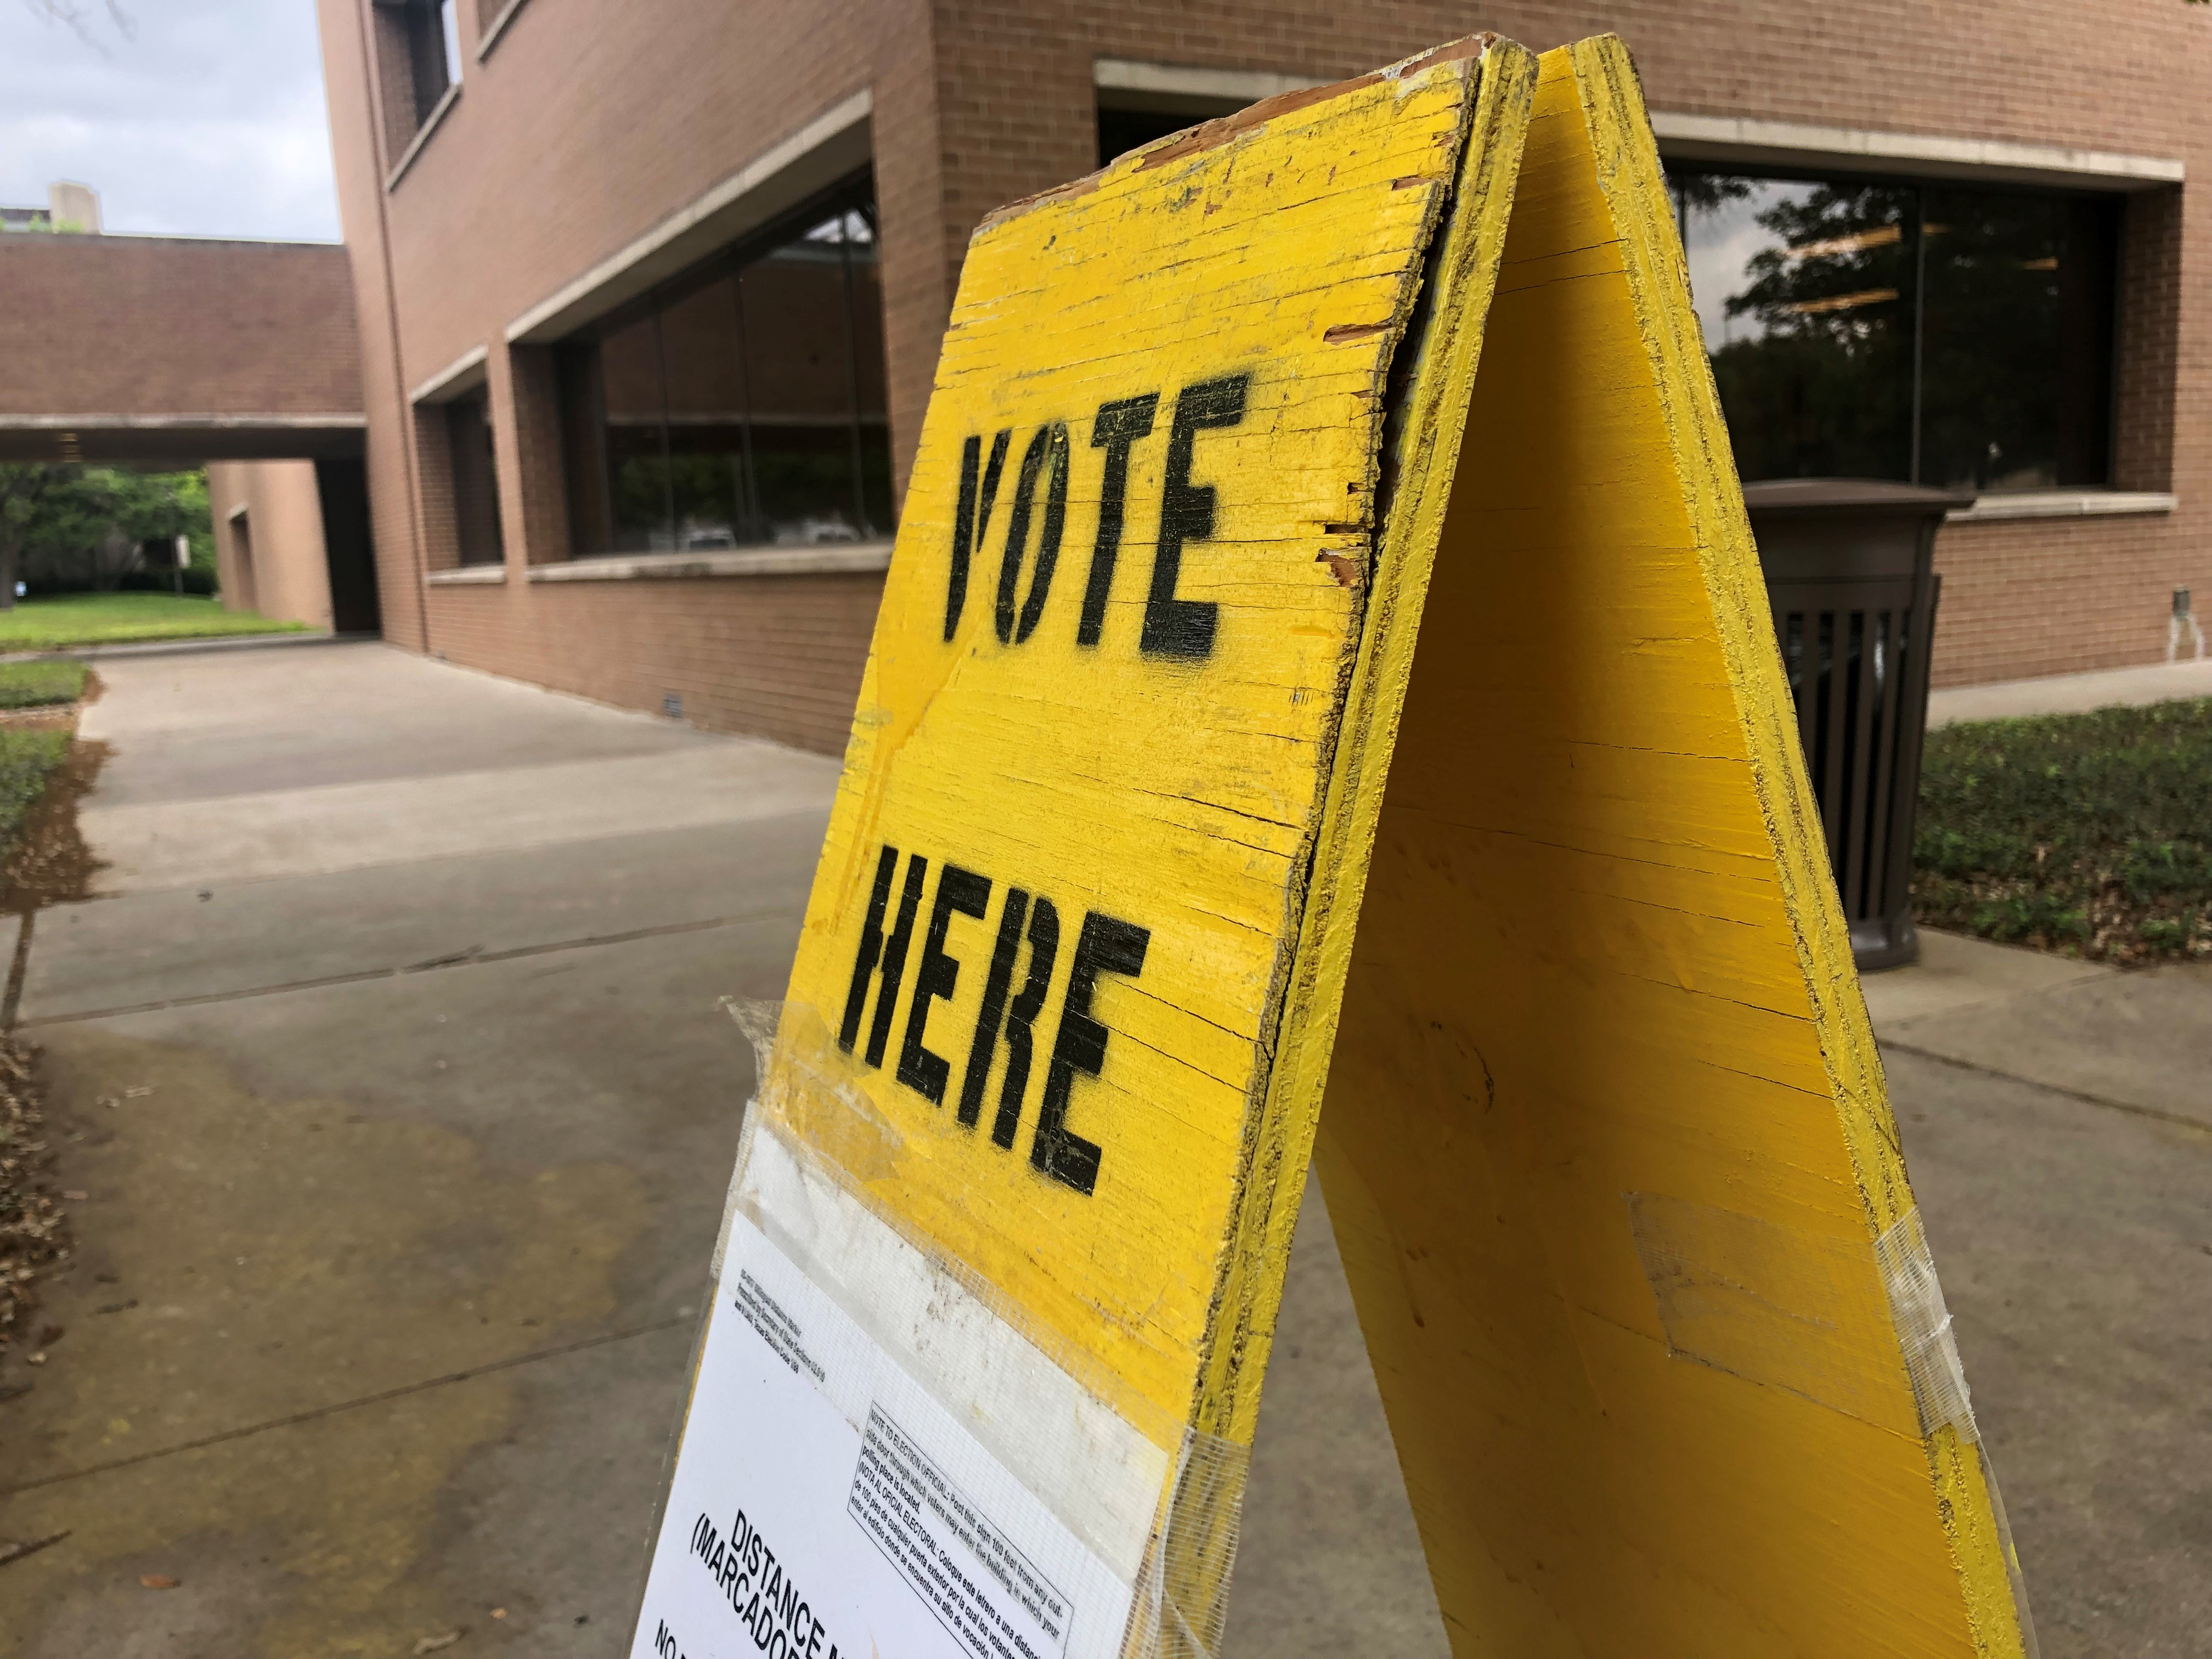 Early Voting for Richardson's Runoff Election Continues